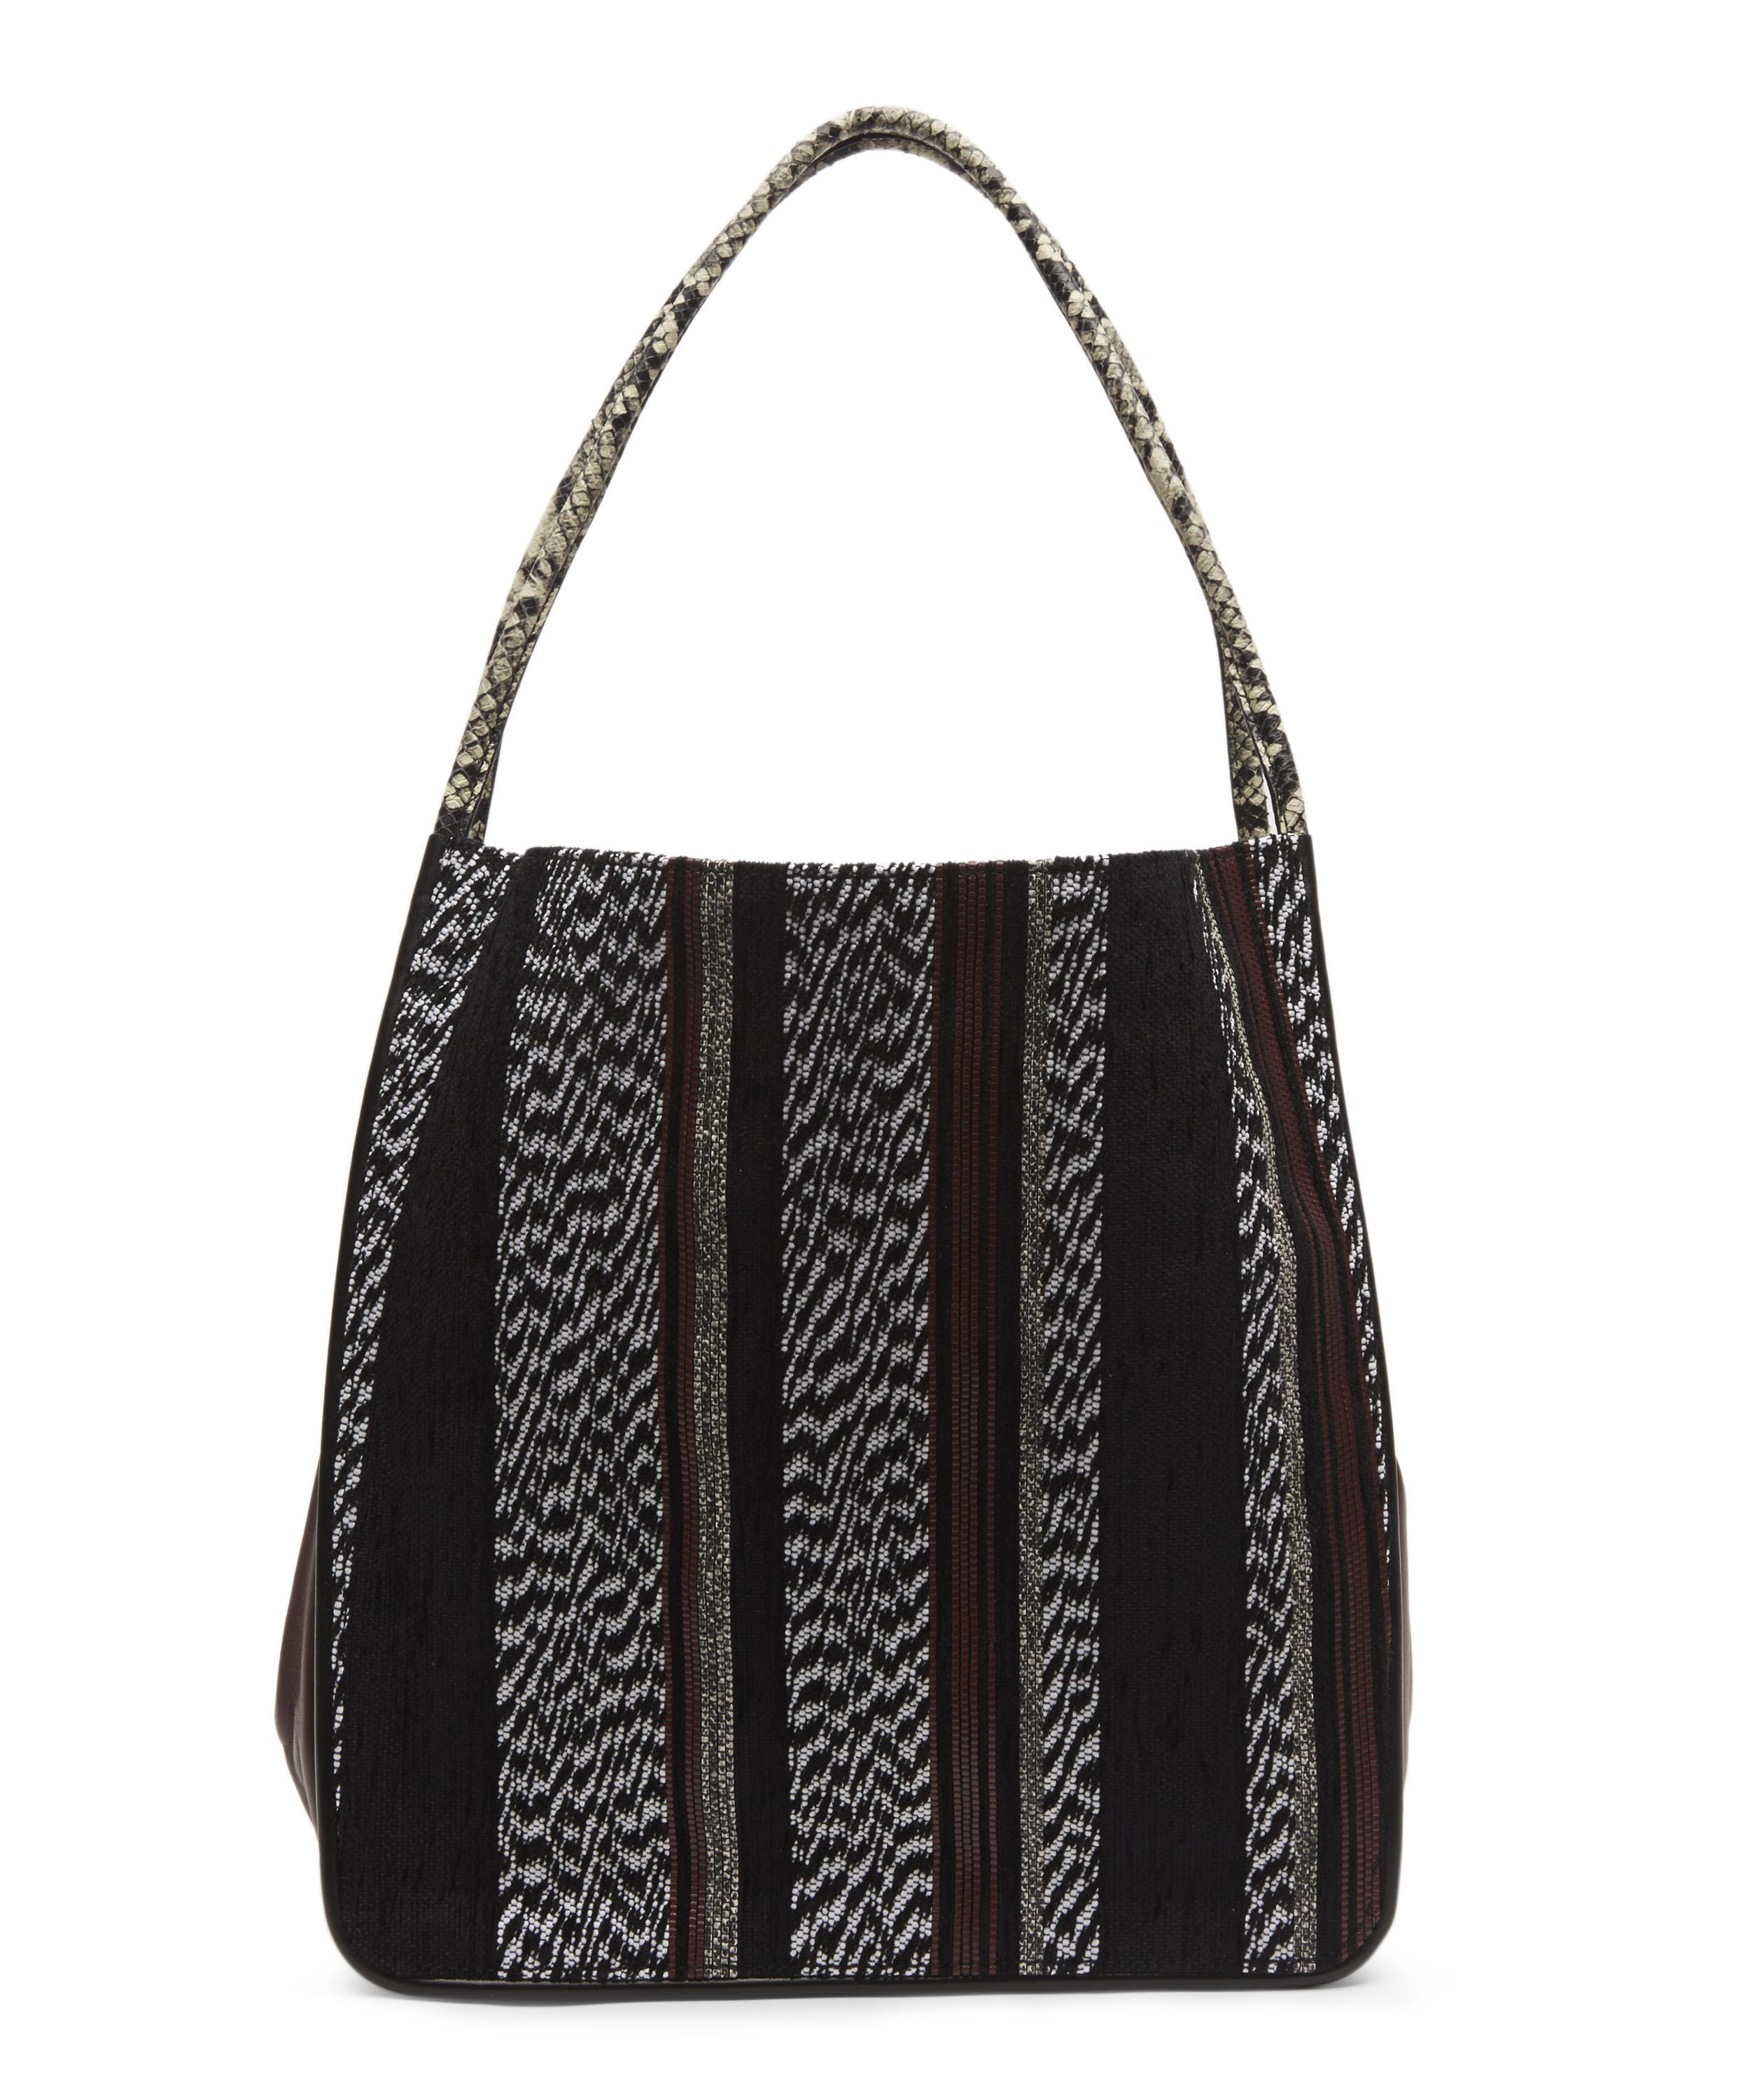 Proenza Schouler Leather Extra Large Woven Tote in Black